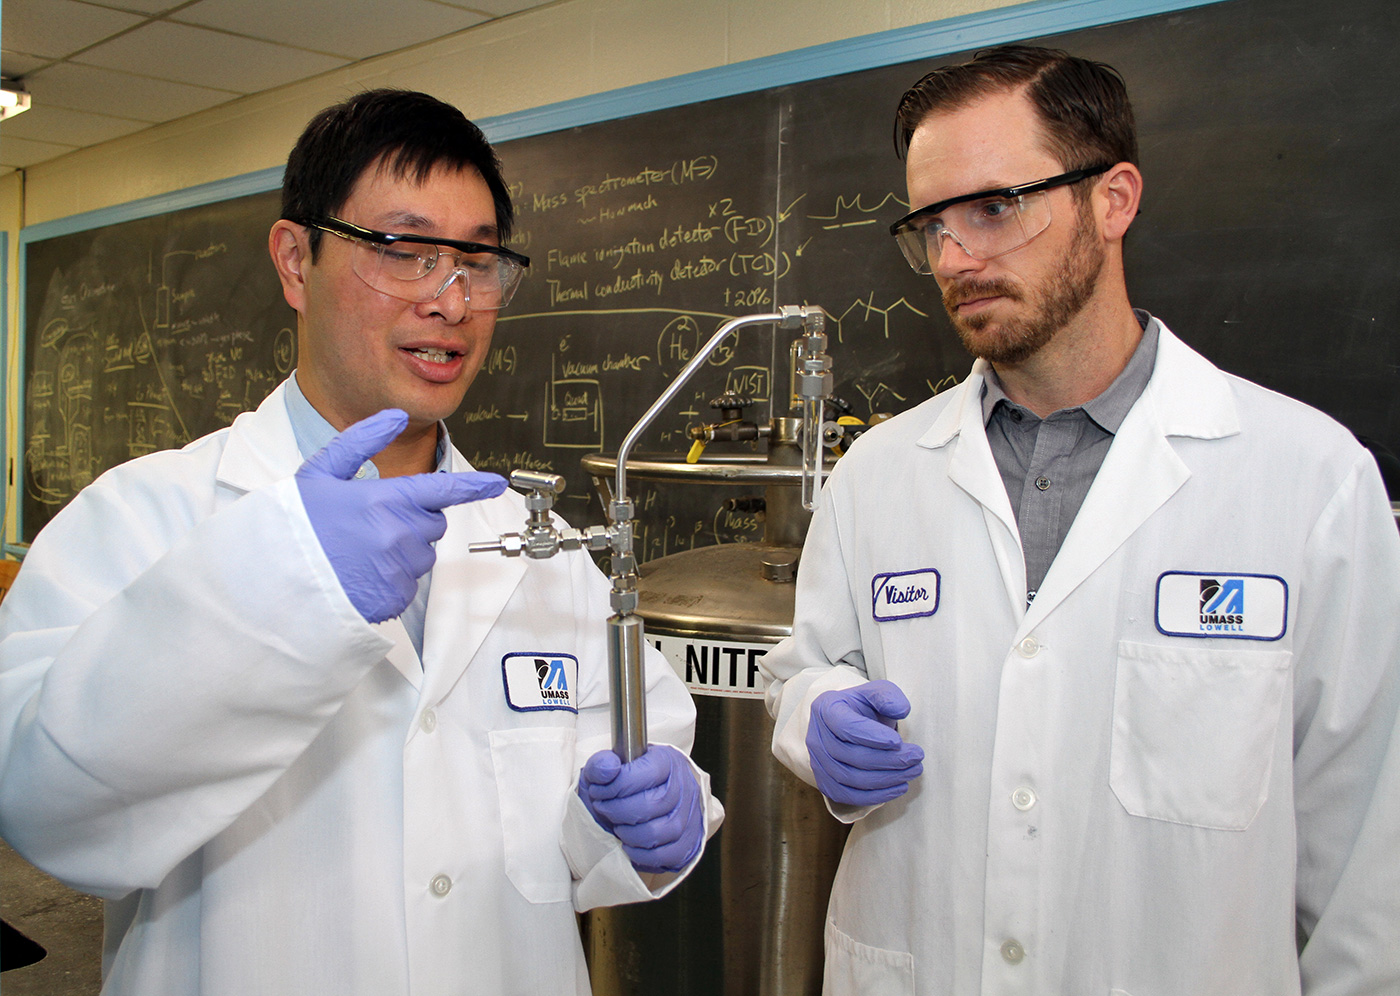 Asst. Profs. Hsi-Wu Wong and Hunter Mack examine the reactor used in creating biofuels in the lab.